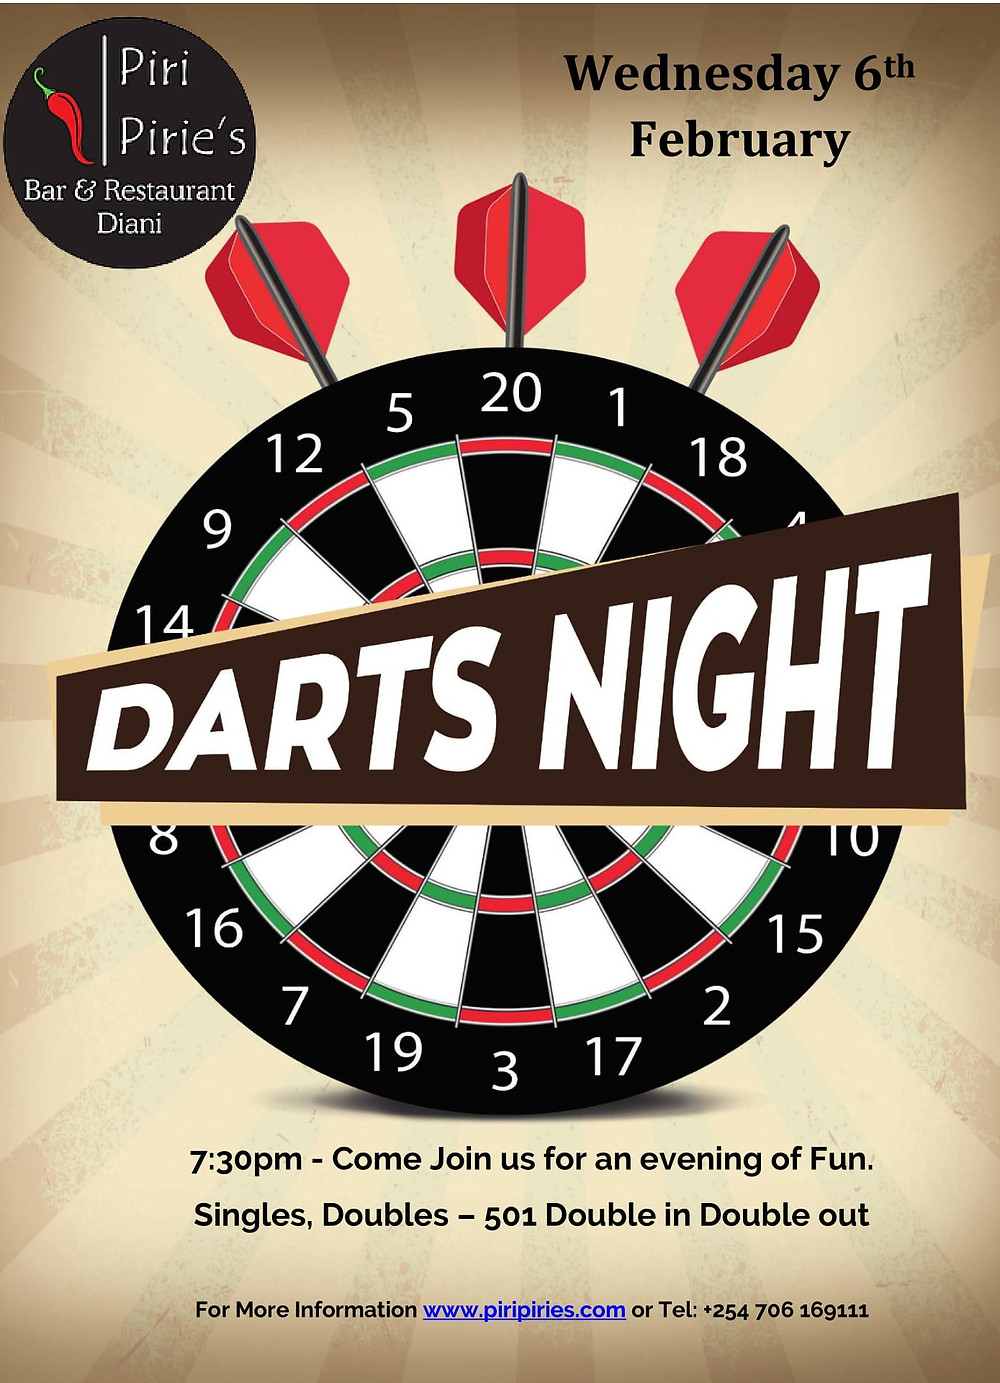 Wednesday 6th Feb Darts Night